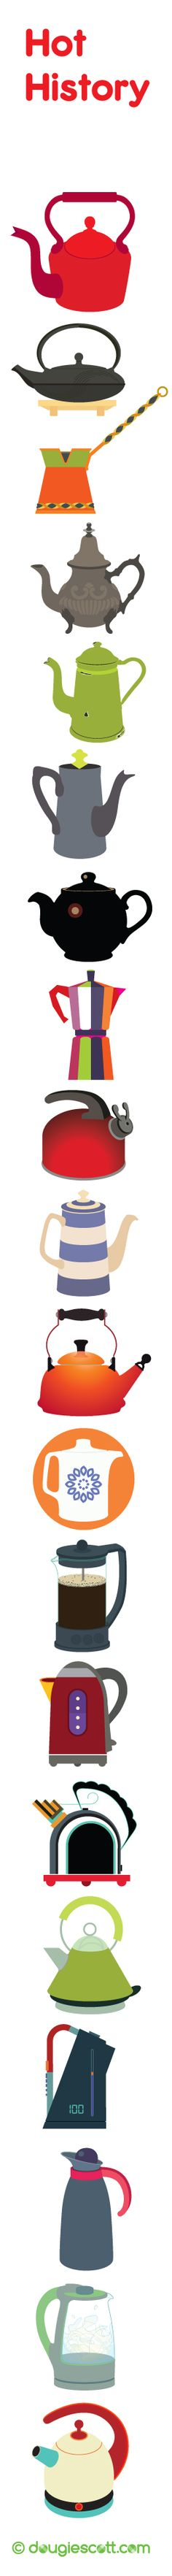 Tea and coffee pot hot history. Info graphics for tea time.